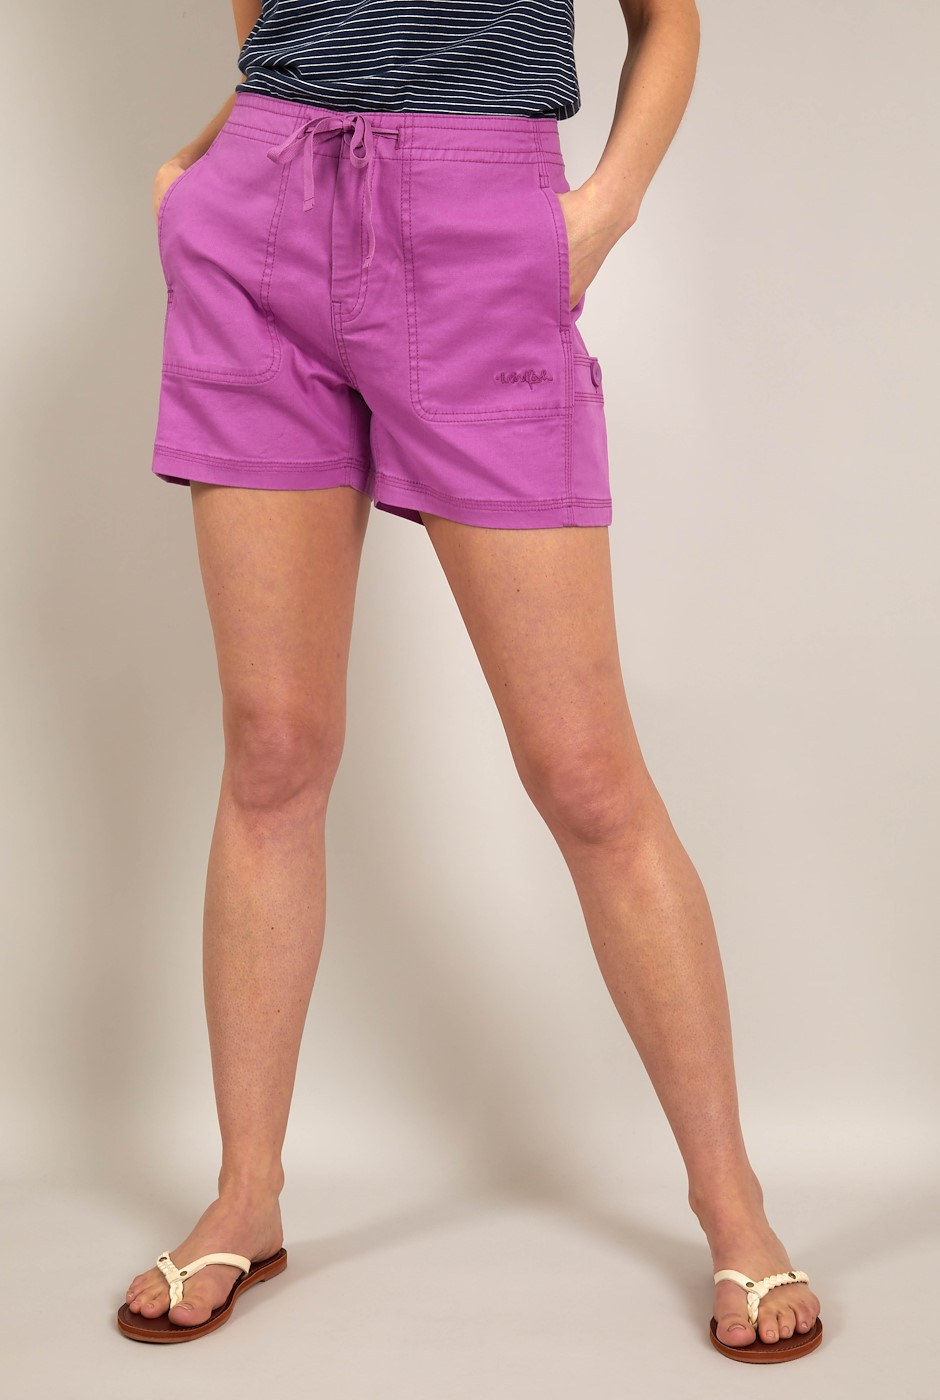 Willoughby Organic Cotton Shorts Mulberry